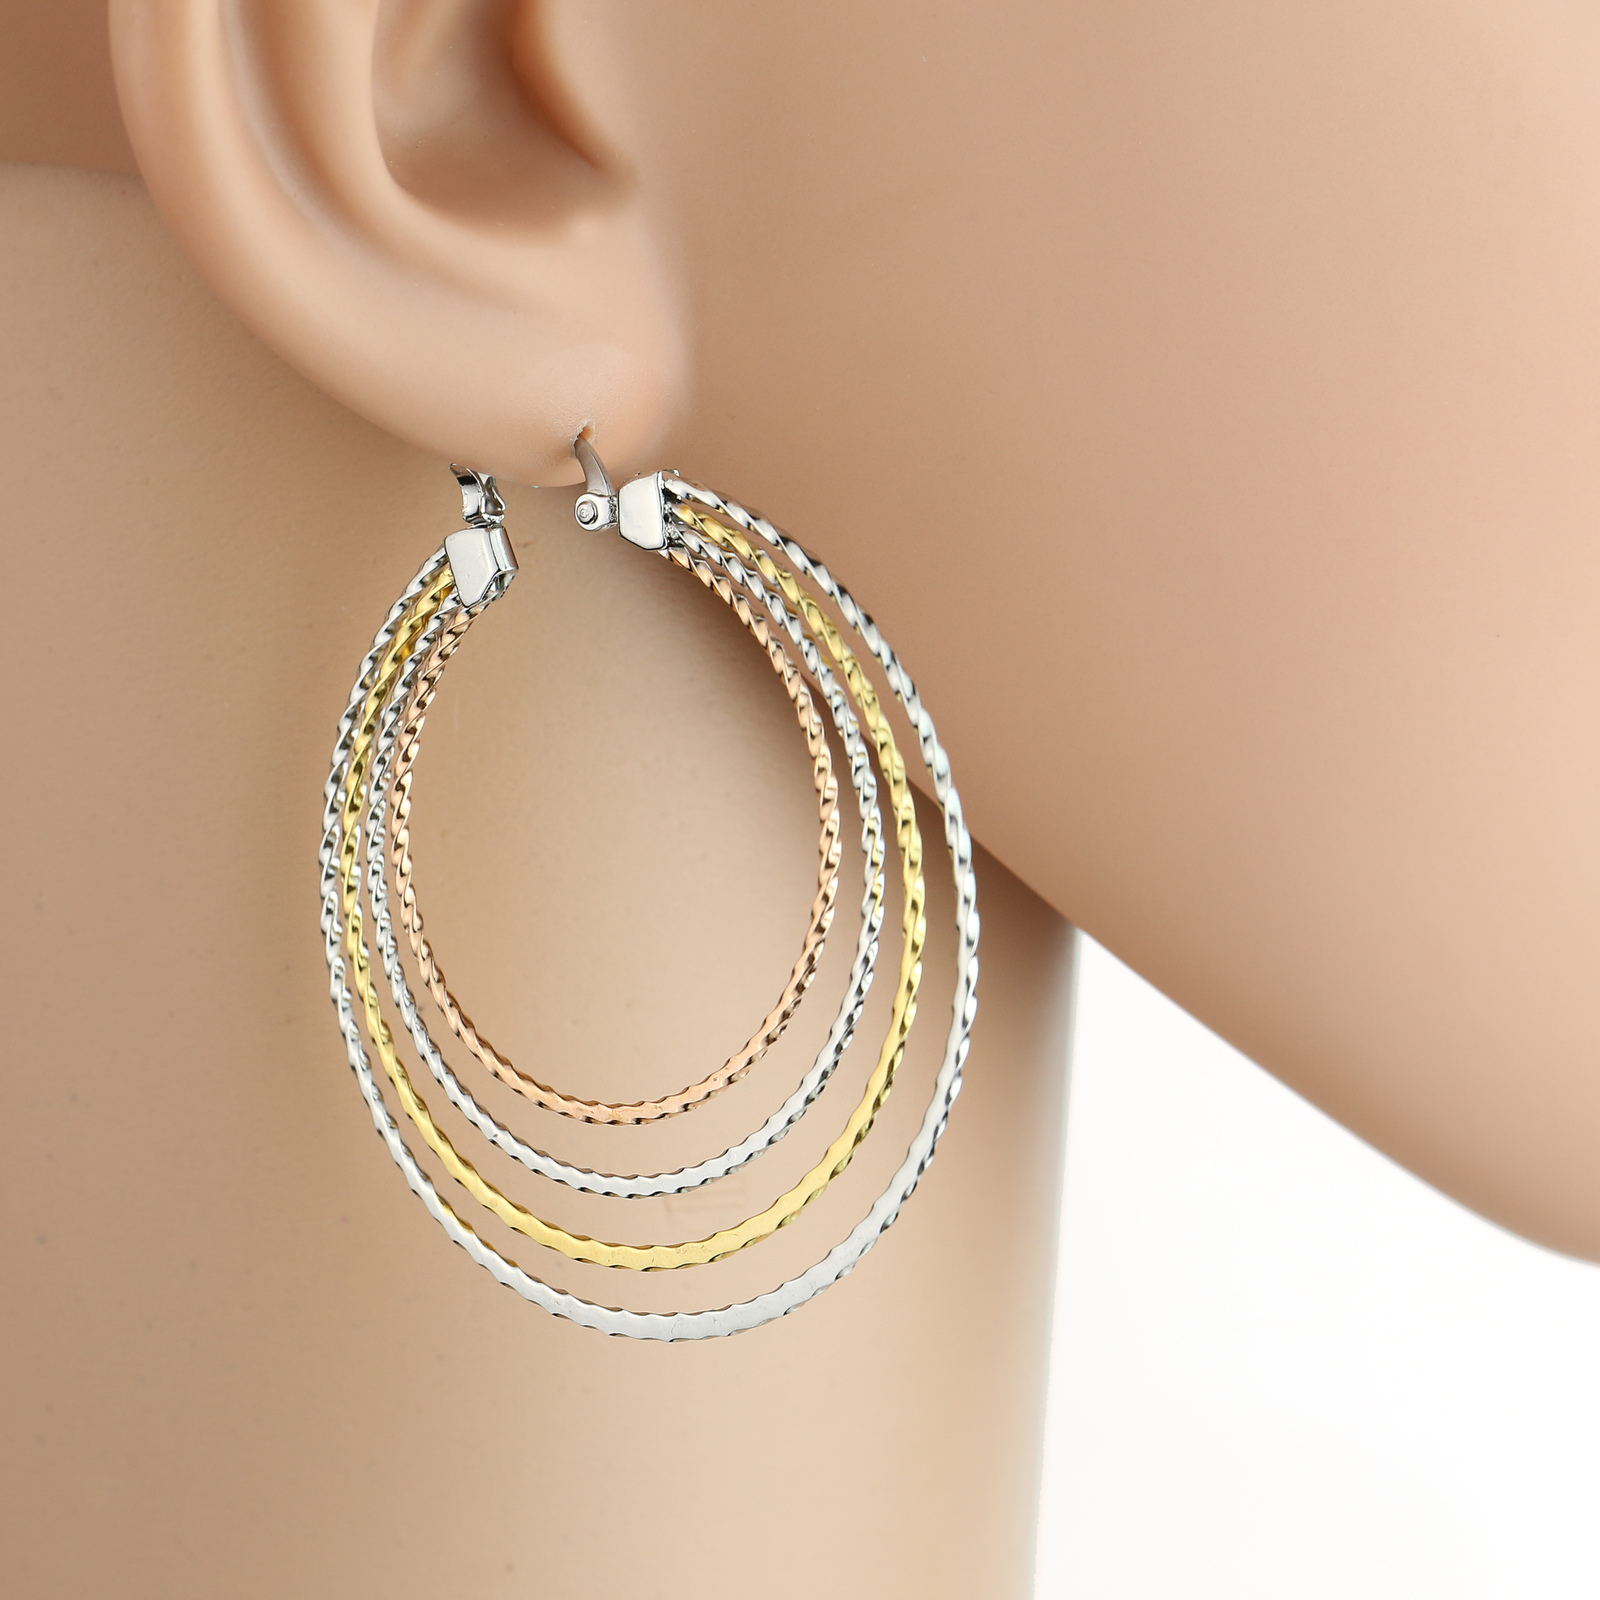 Stylish Large Tri-Color Silver, Gold & Rose Tone Hoop Earrings- United Elegance